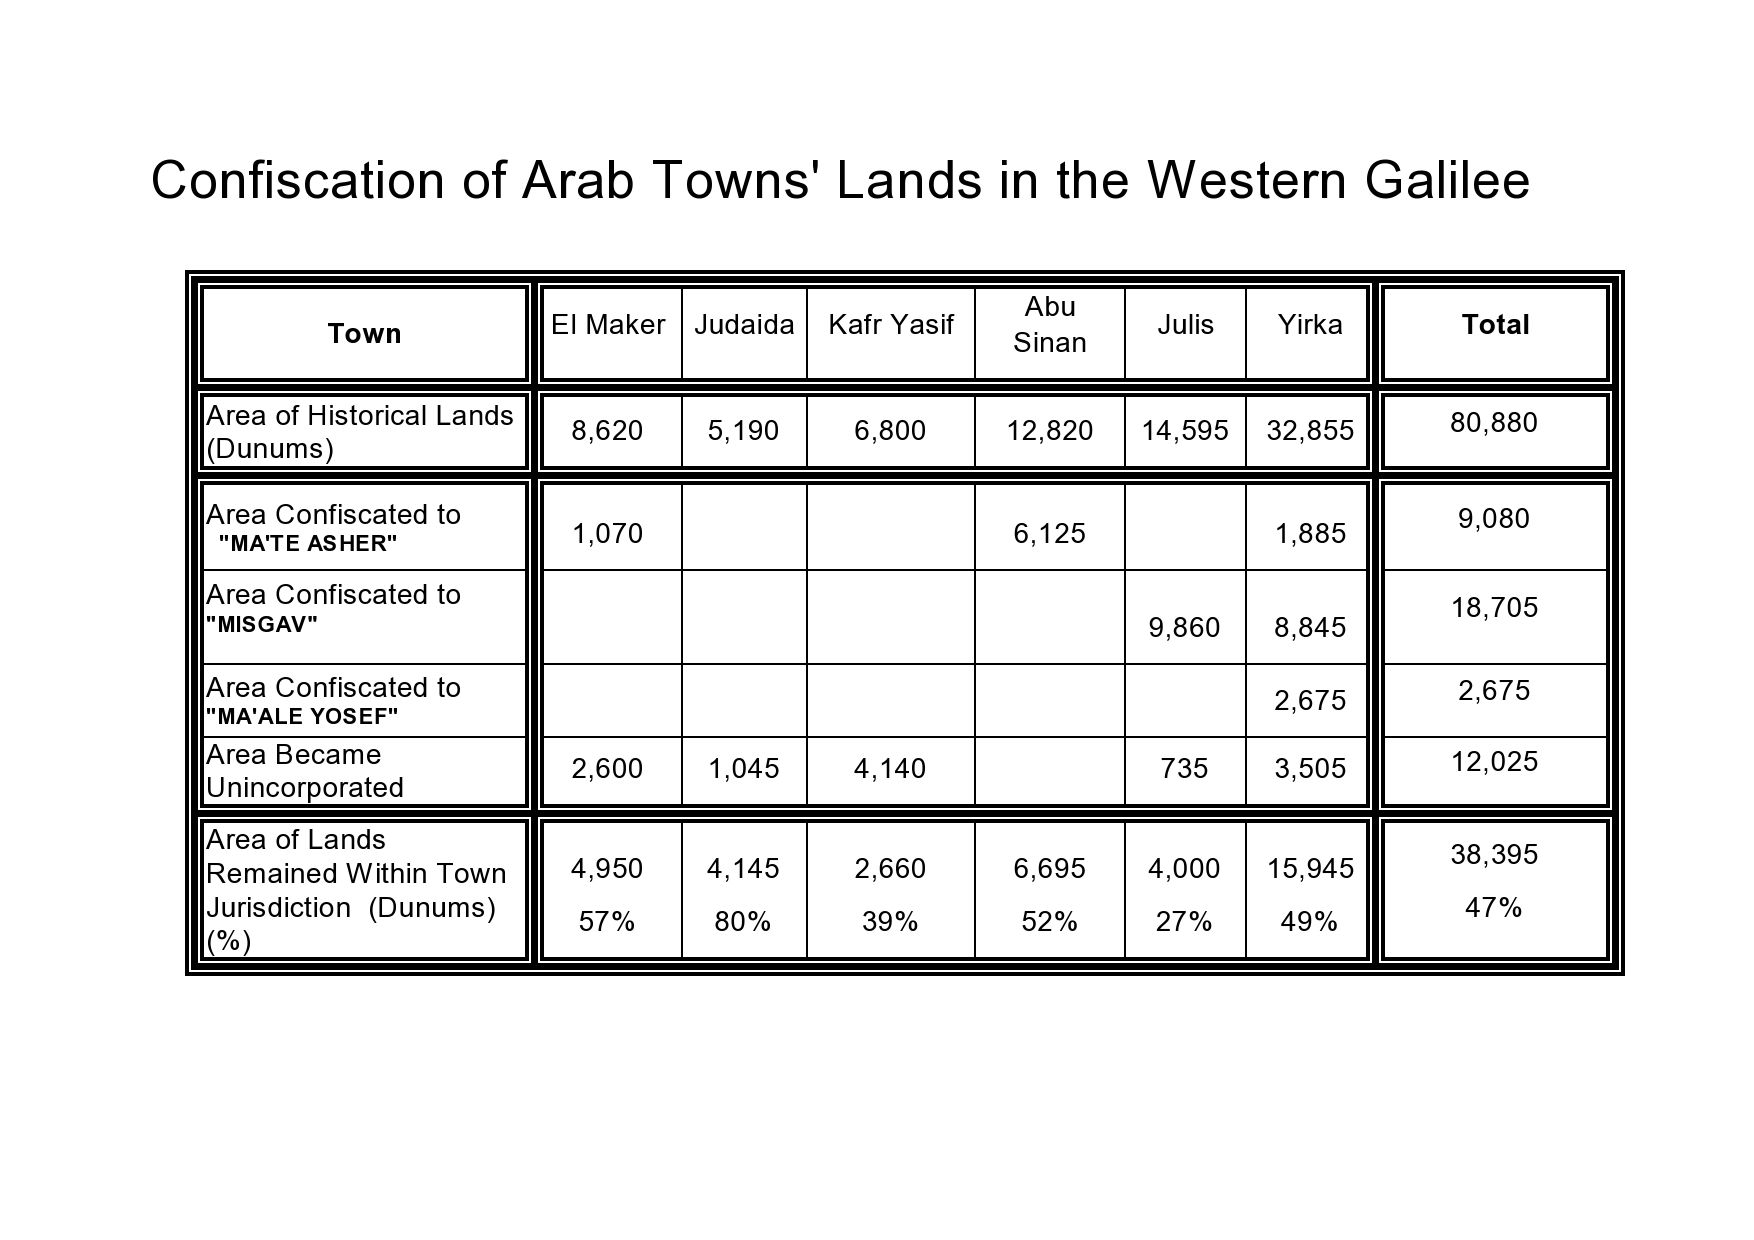 Series of maps showing the land confiscations from Arab villages and townships in different regions in Israel.